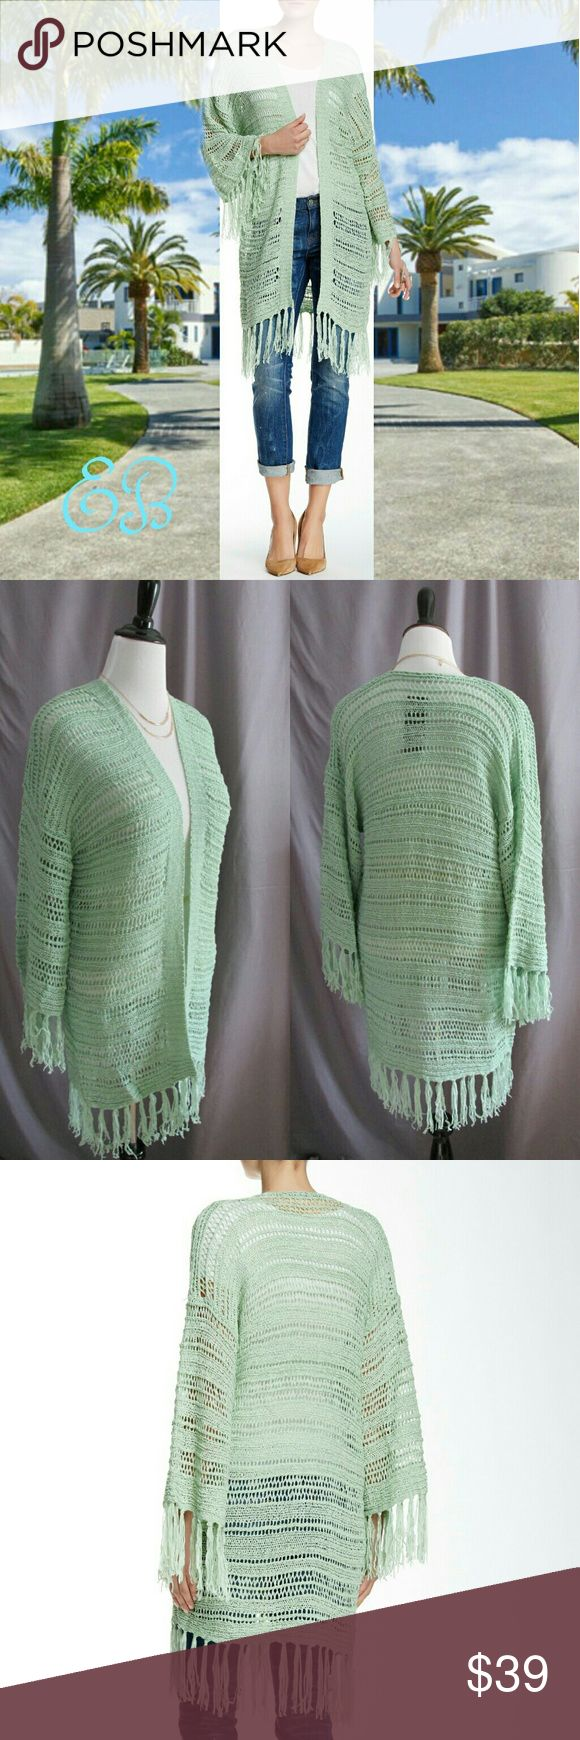 """Fringe Kimono Size XL Seafoam Green Fringe Kimono Size XL Seafoam Green  Condition:  NWT  Type: Jacket Style: Kimono  Size: XL Color: Pistachio  Brand: John Fashion  Features: Fringe Measurements: 41"""" Chest 31.5"""" Length 15"""" Sleeve Materials: 45% Wool 40% Polyester 15% Acrylic Country of Manufacturer: China  Closet Note: brand tag is unraveling from collar. Also,  item is very stretchy. Sleeve and length measurements without fringe. John Fashion  Jackets & Coats"""